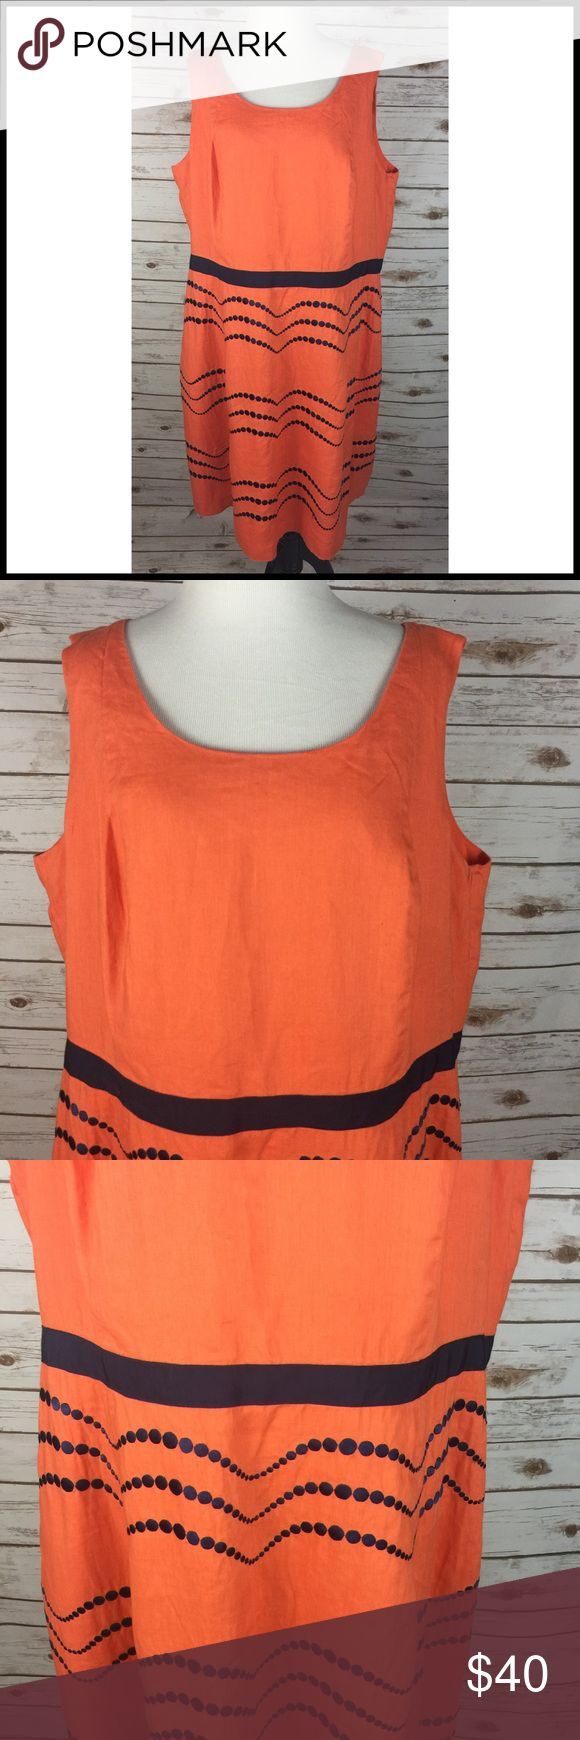 Boden Sz 18 L Long Orange Linen Dress Embroidered Boden Sleeveless Fit & Flare Dress Orange w/ Navy Blue Accents/ Embroidery Women's Size 18L LONG  Gently used - no stains or tears 100% Linen Lining - Cotton  Crisp and comfy sleeveless linen dress Zips up back Fit & flare style Fully lined Scoop neck Knee length on a tall person - please see measurements below Ribbon trim around waist Embroidered polka dot / wave pattern  Chest (armpit to armpit) - 23.75 Waist (side to side) 20.75 Strap…